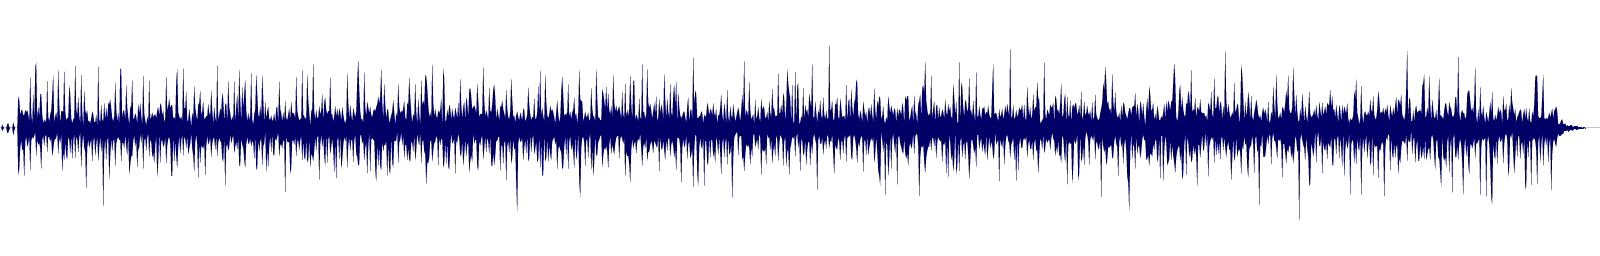 waveform of track #143484